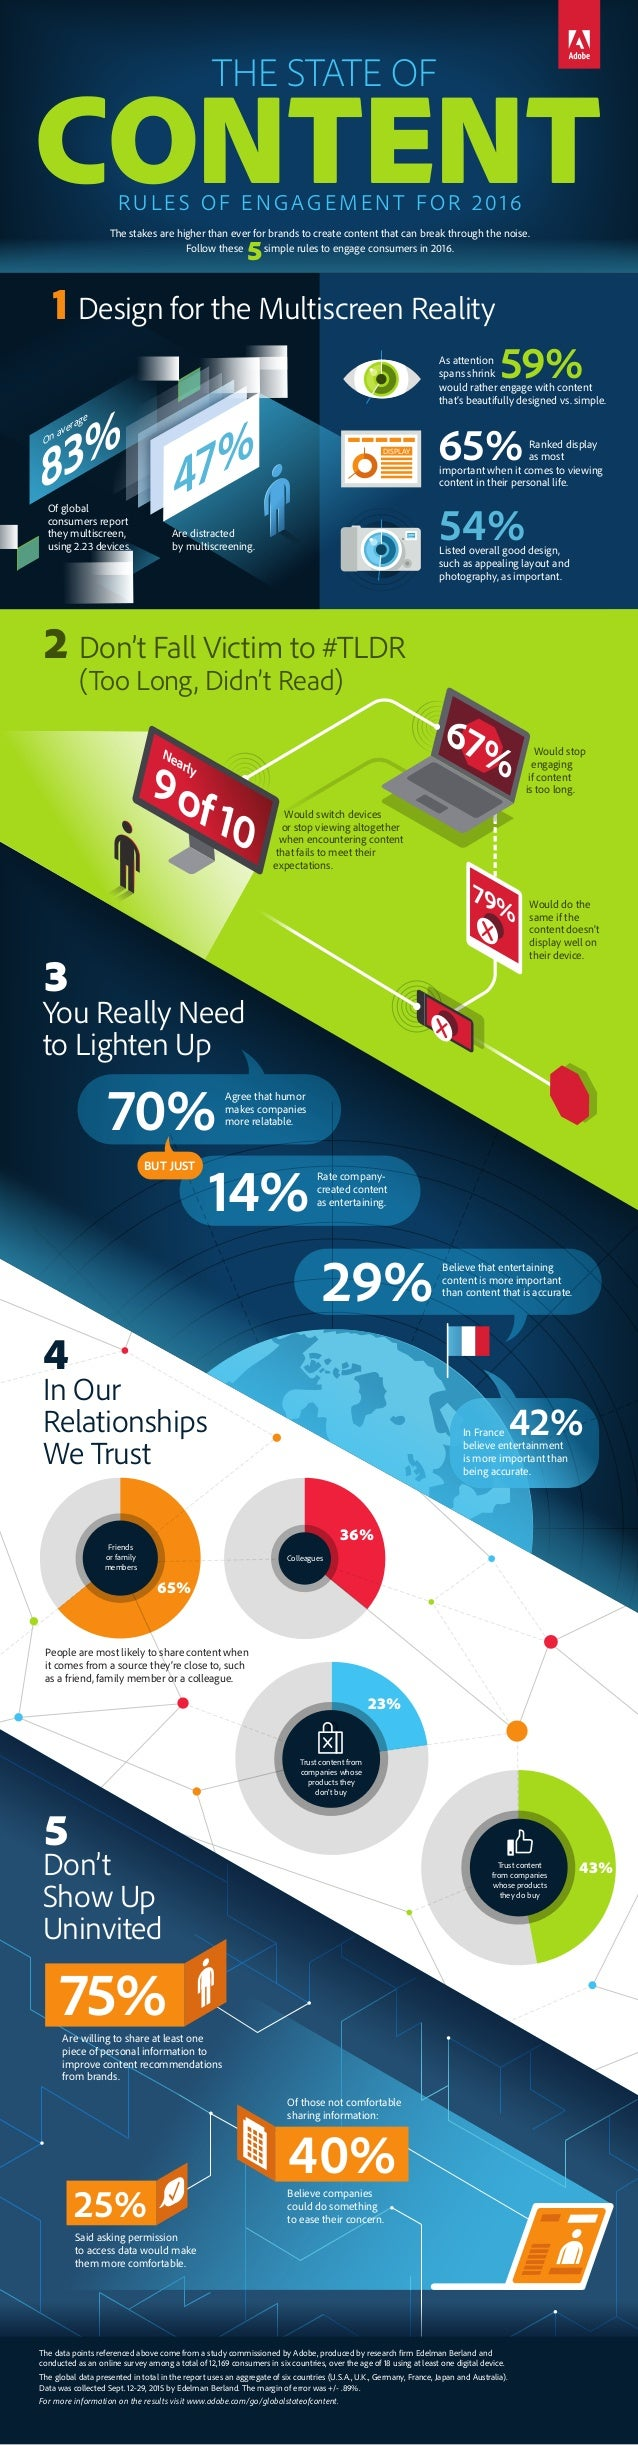 4 In Our Relationships We Trust Trust content from companies whose products they don't buy 23% 65% Friends or family membe...